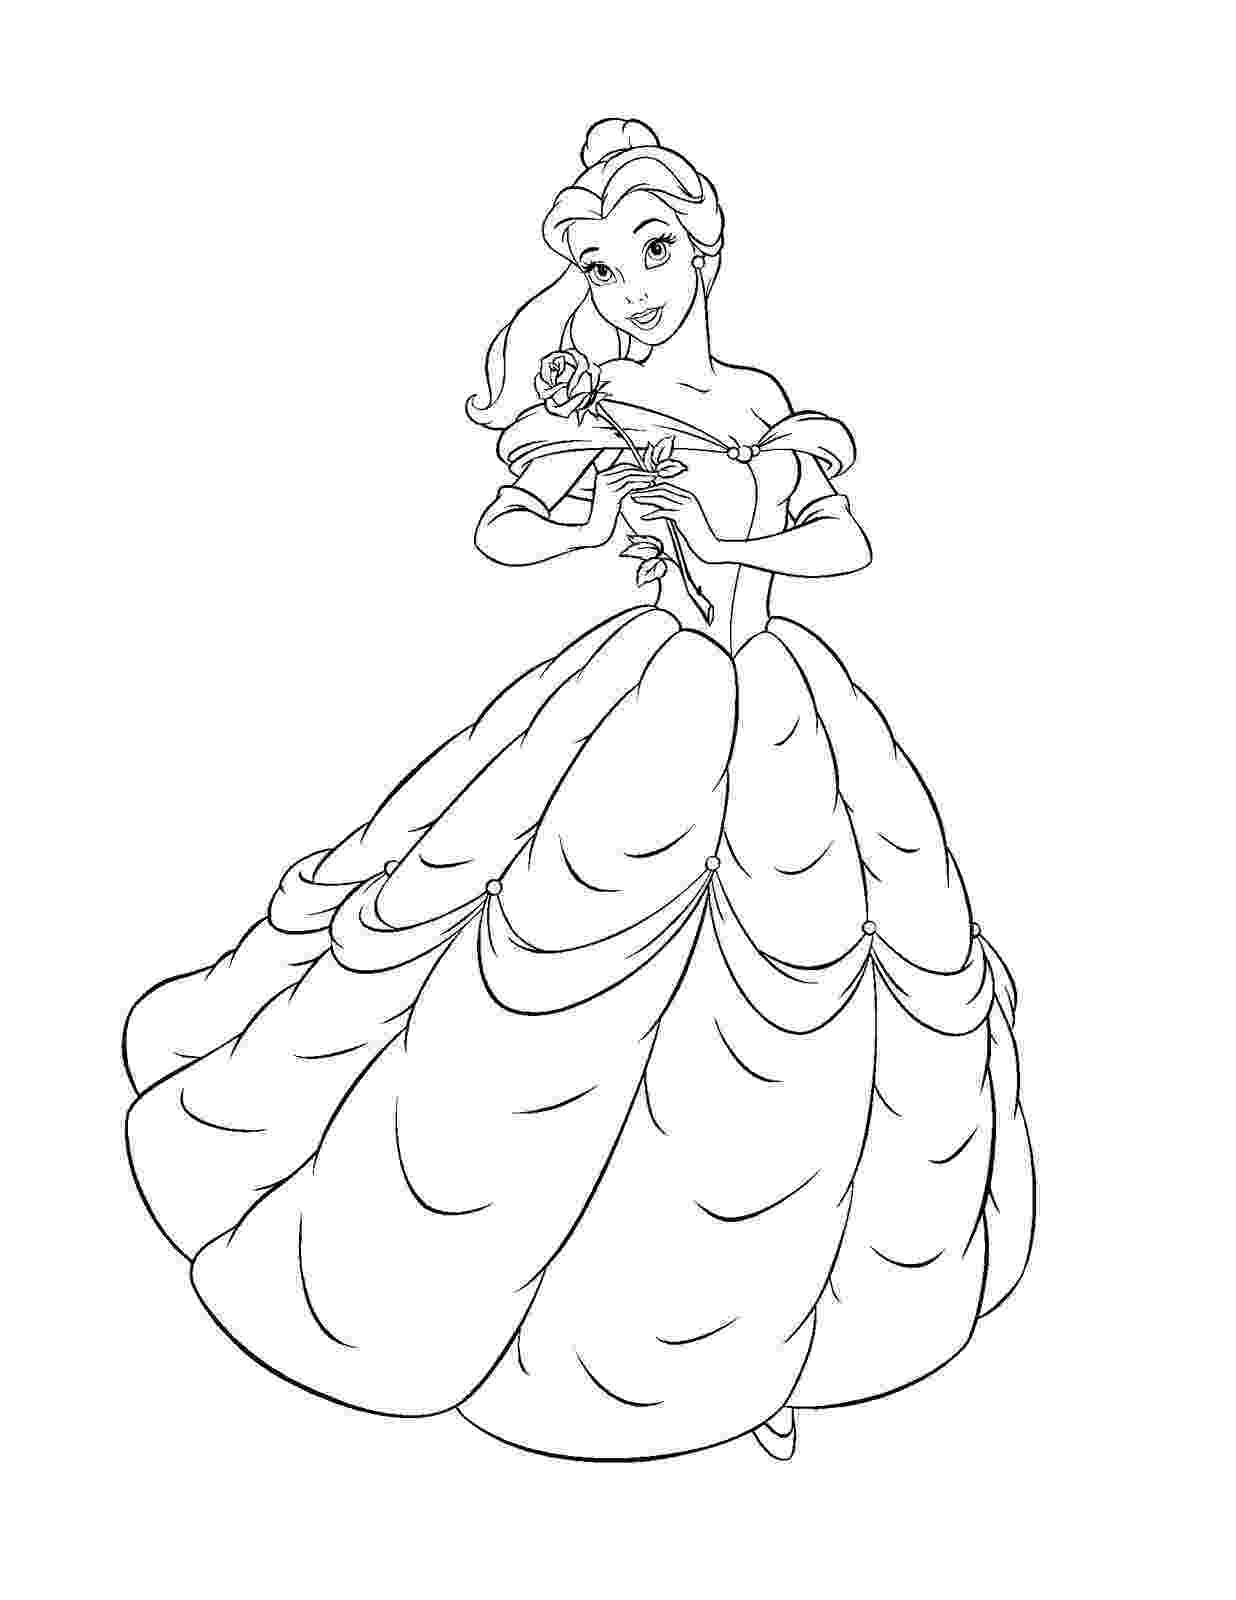 beauty and the beast pictures to colour beauty and the beast coloring pages print and colorcom to beauty pictures beast the colour and